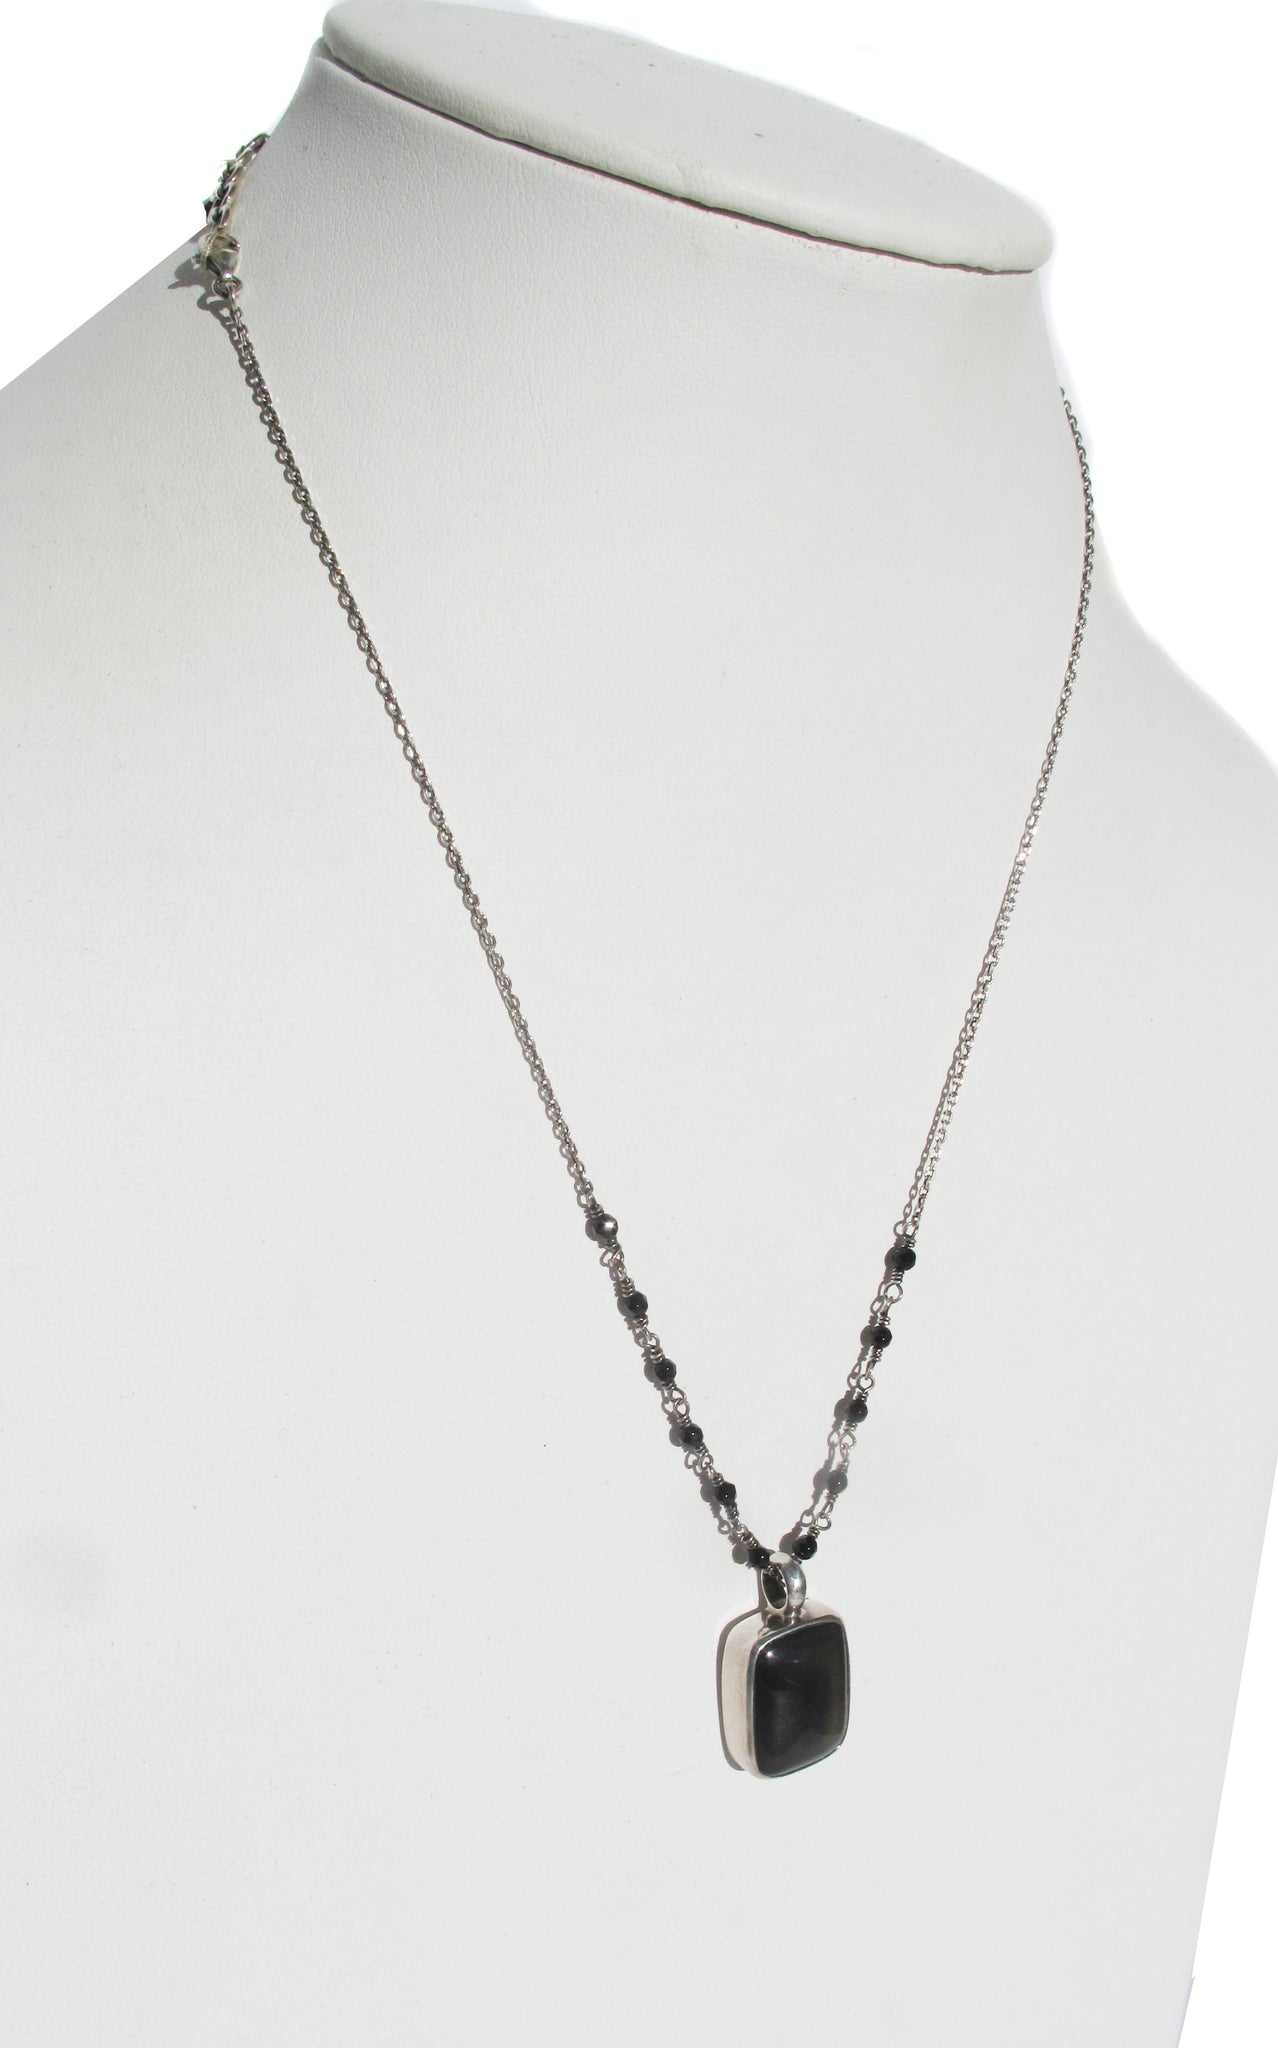 Obsidian on silver and agate necklace